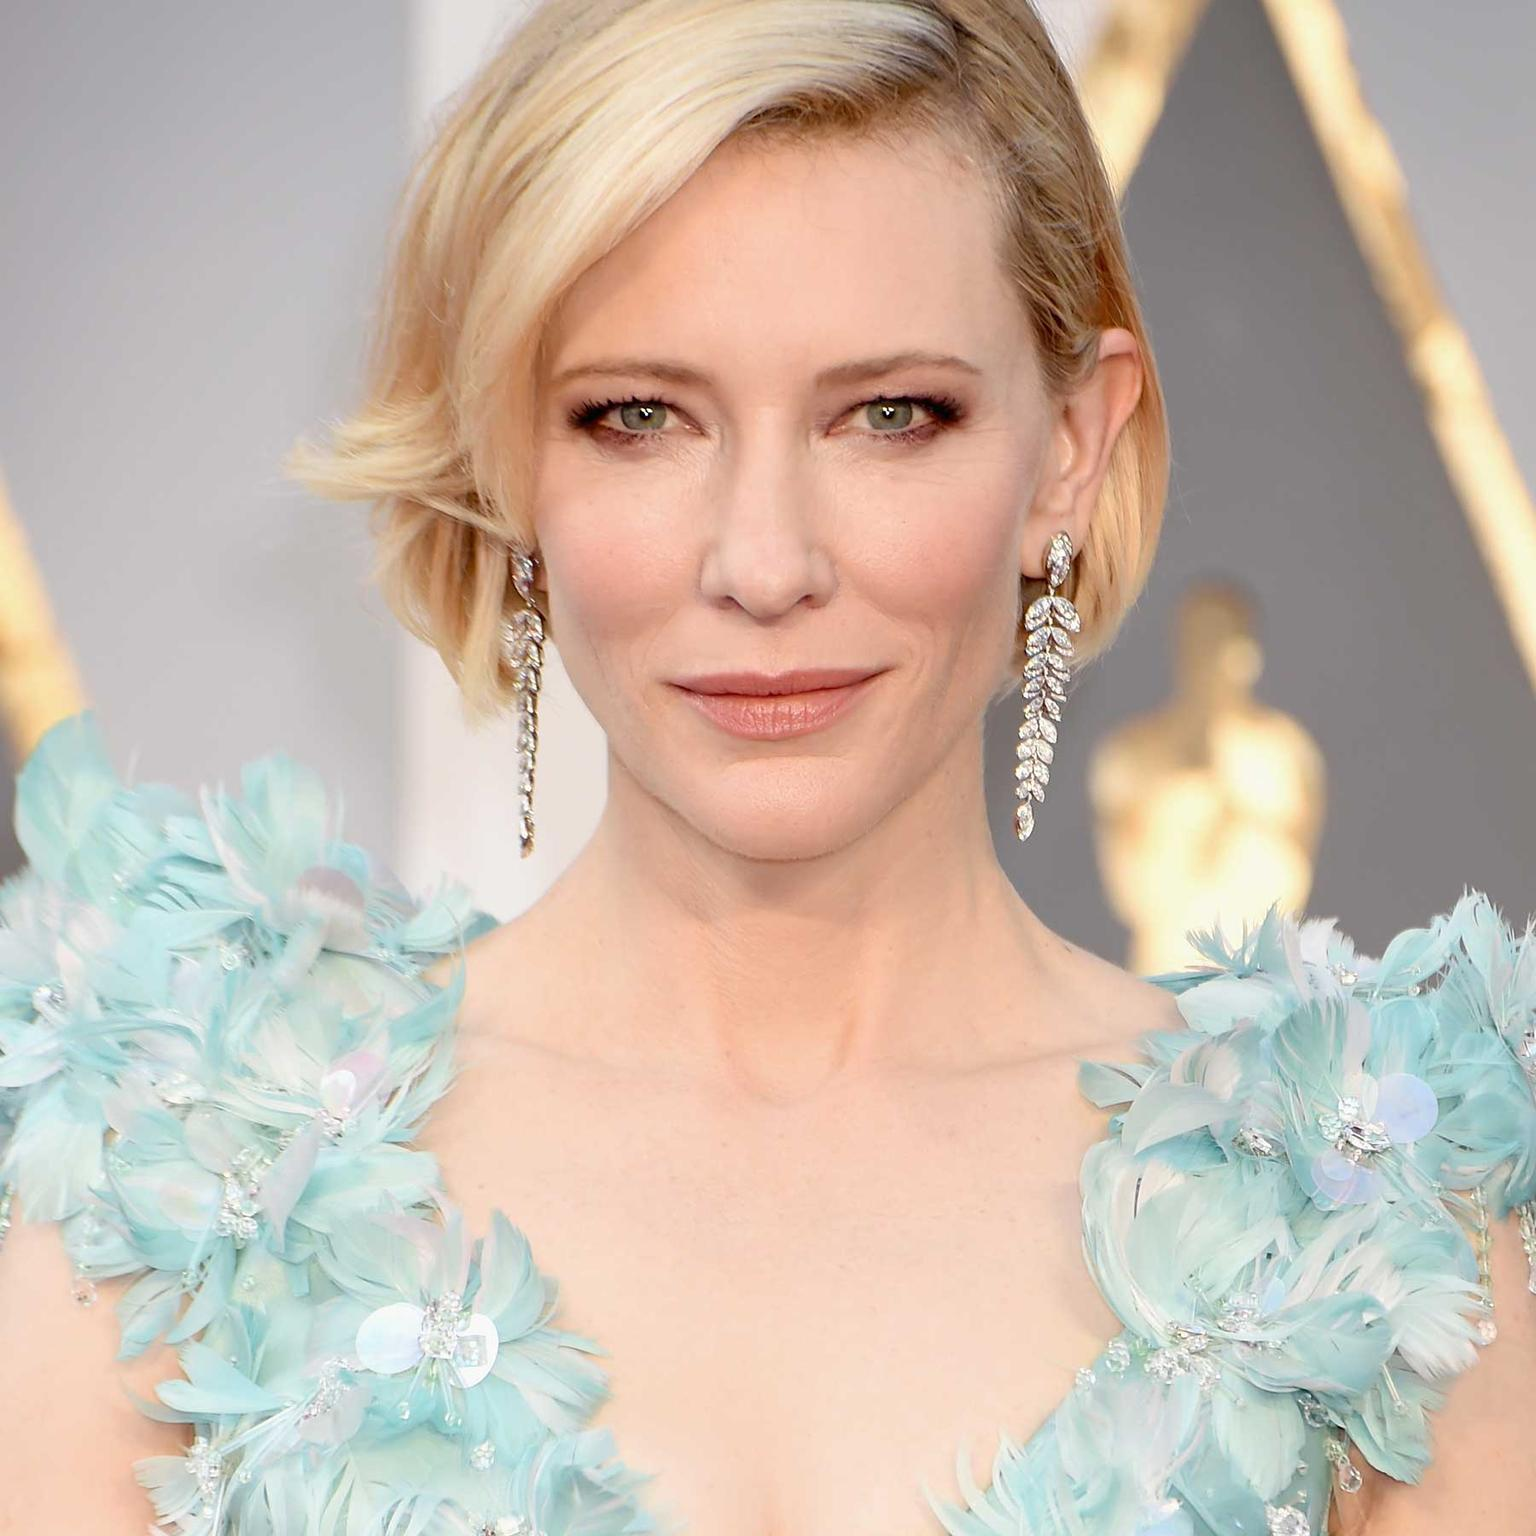 Diamonds steal the limelight at the Oscars